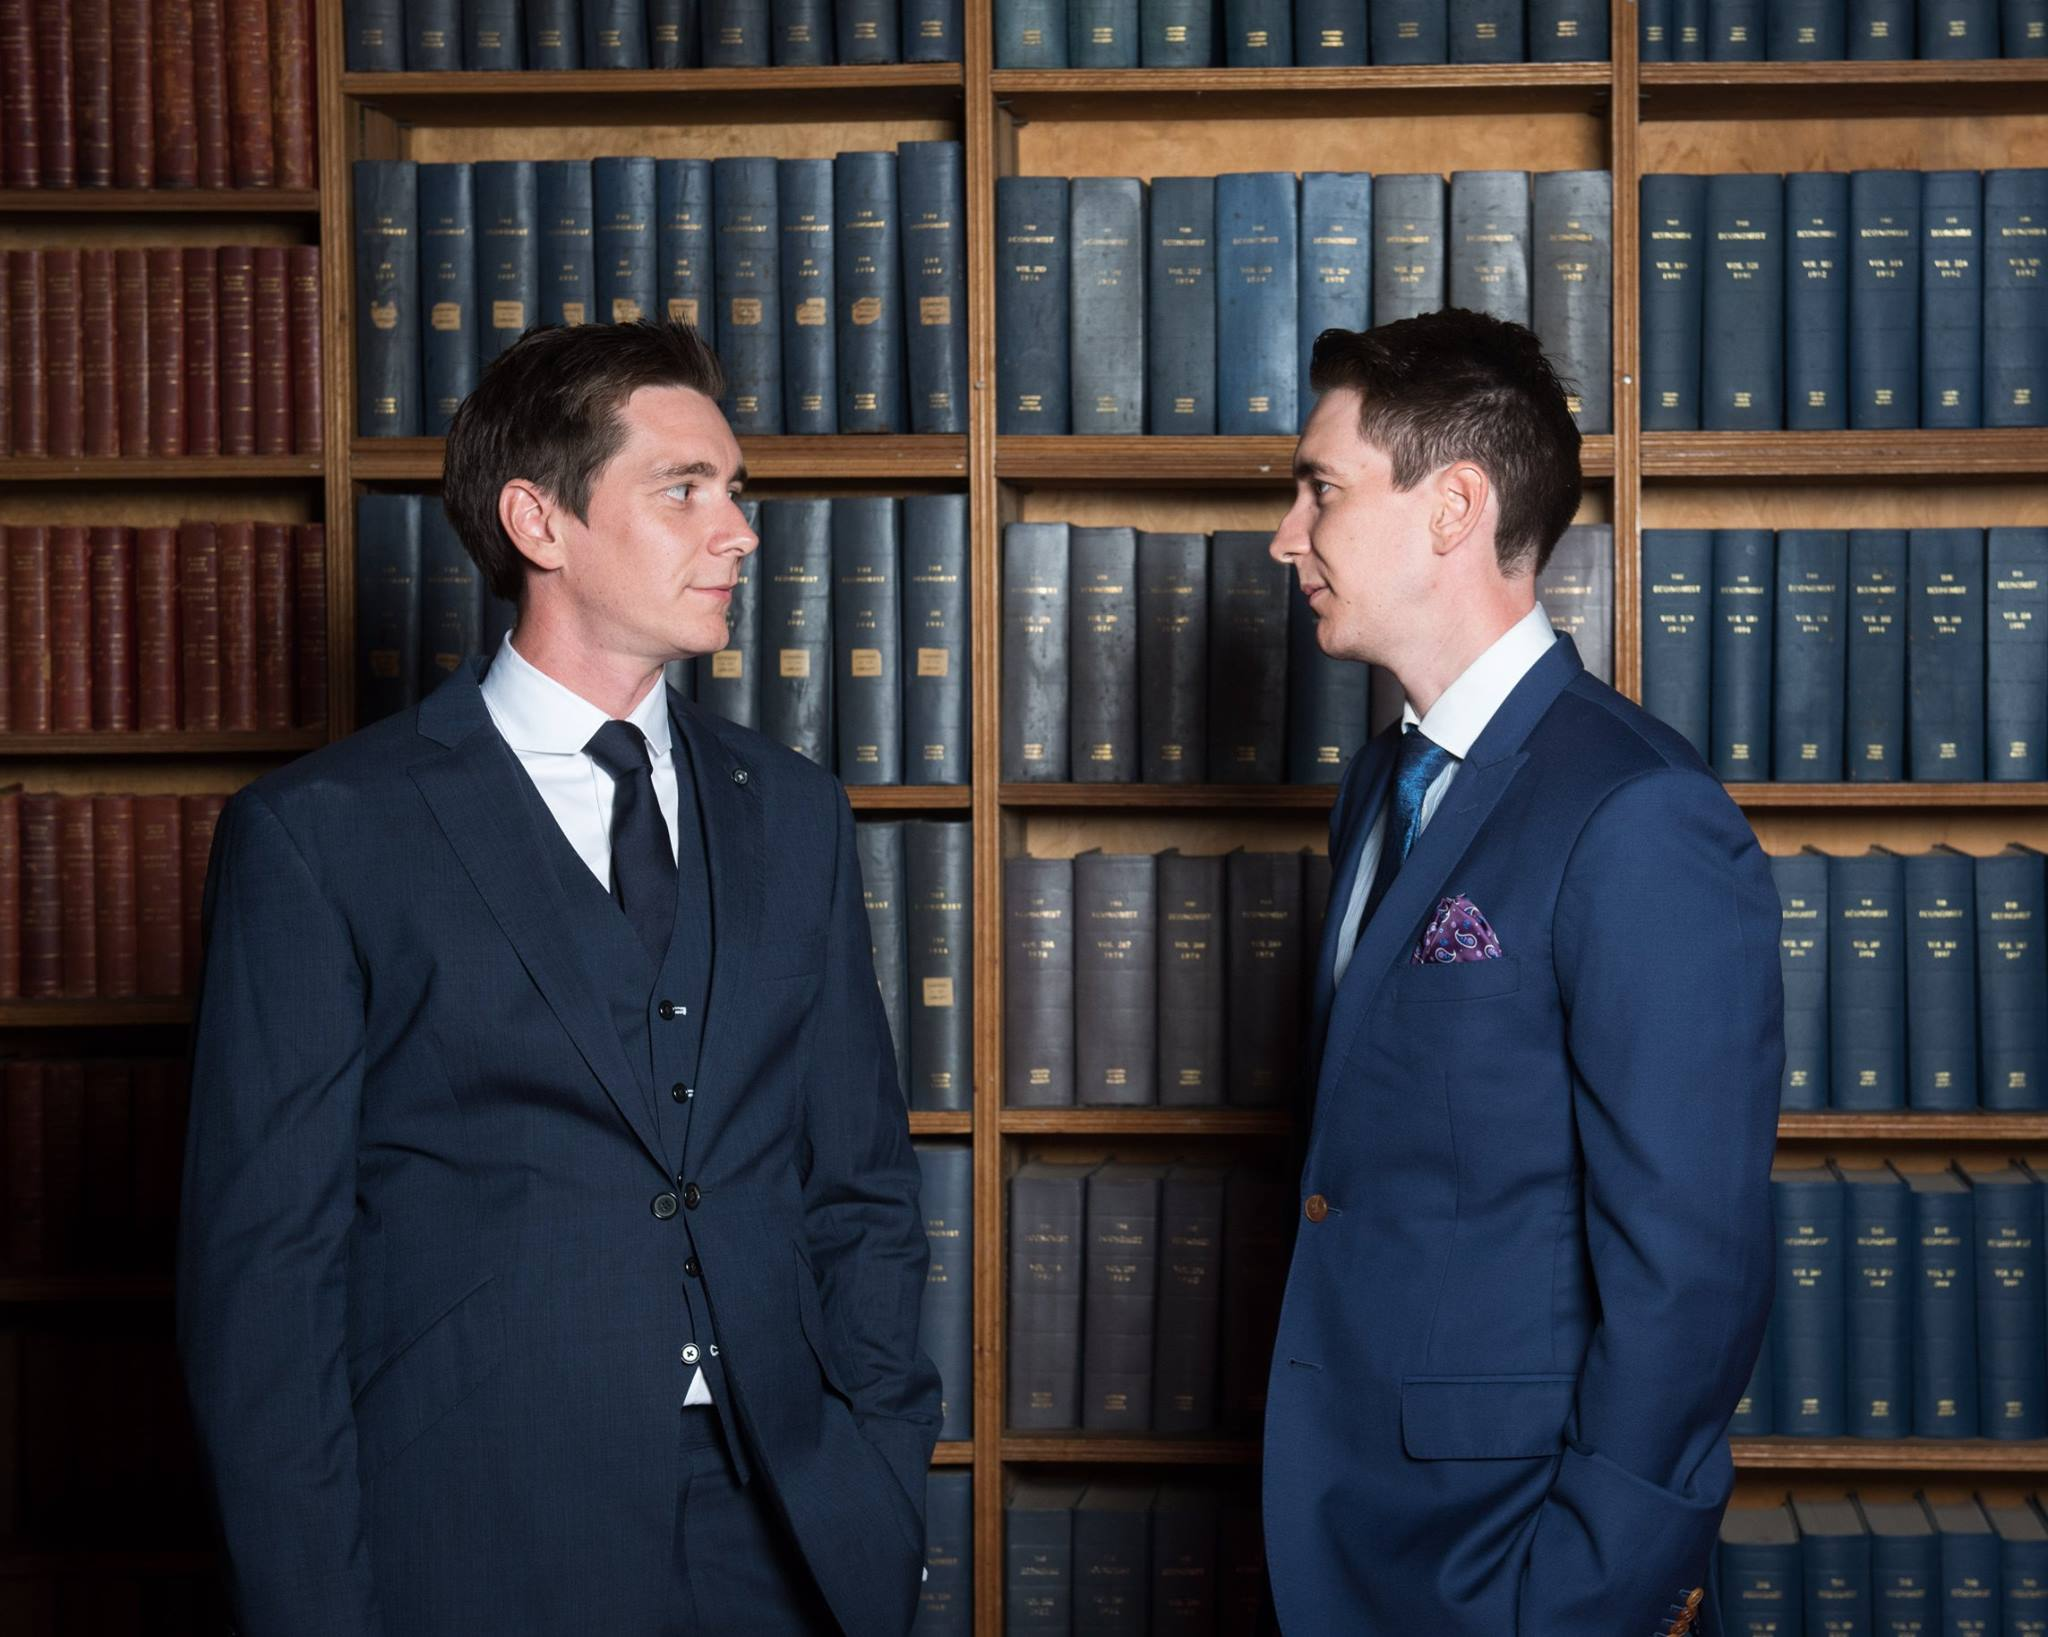 Profile: Oliver and James Phelps